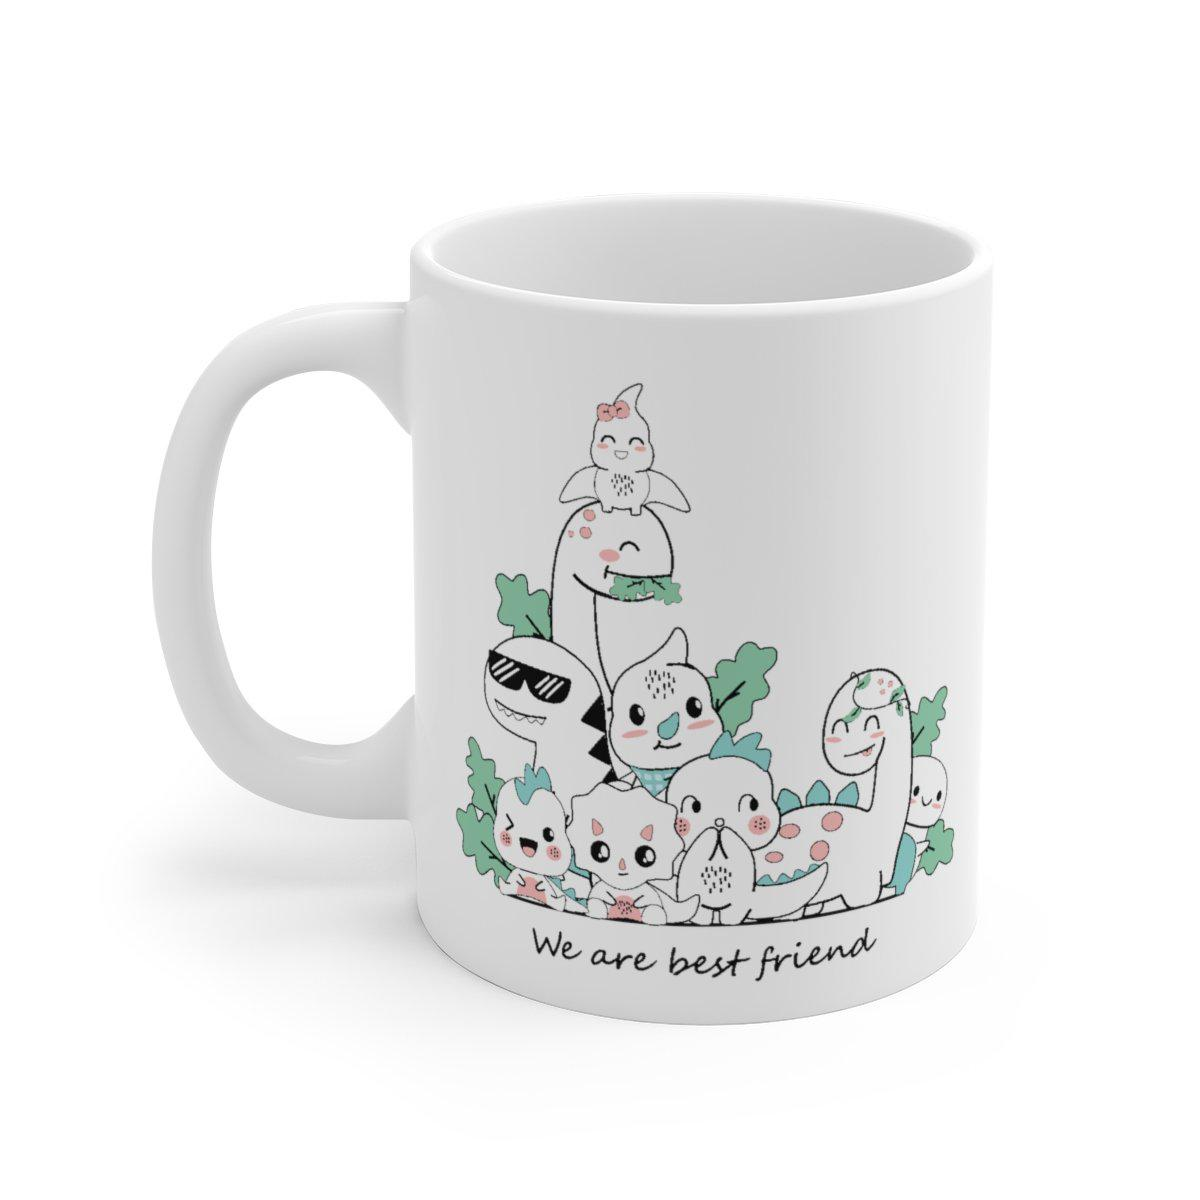 All of your favorite dinosaur friends on a cute dinosaur mug.